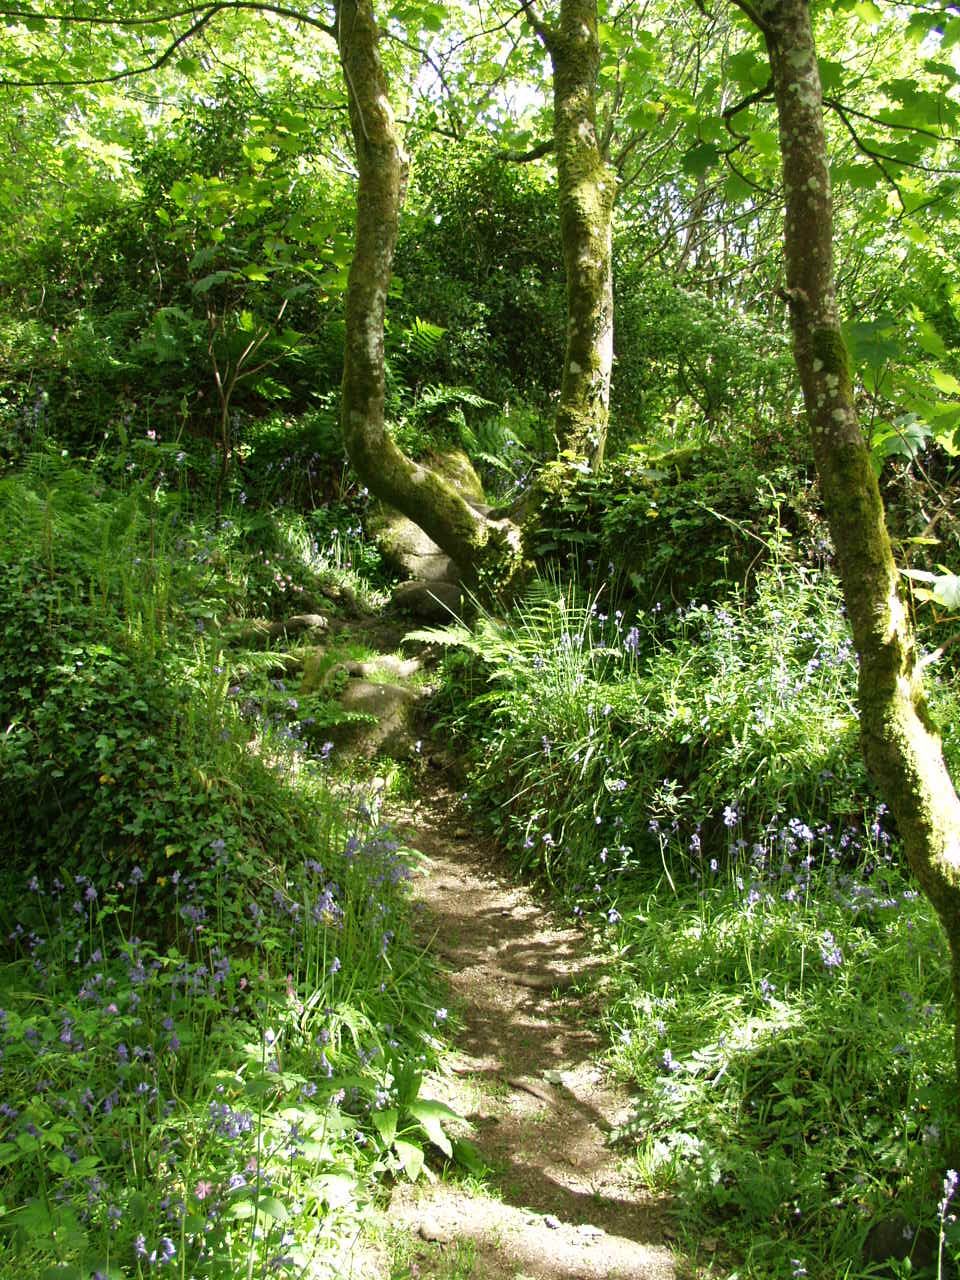 Stunning wildflowers in the woods at Lamorna